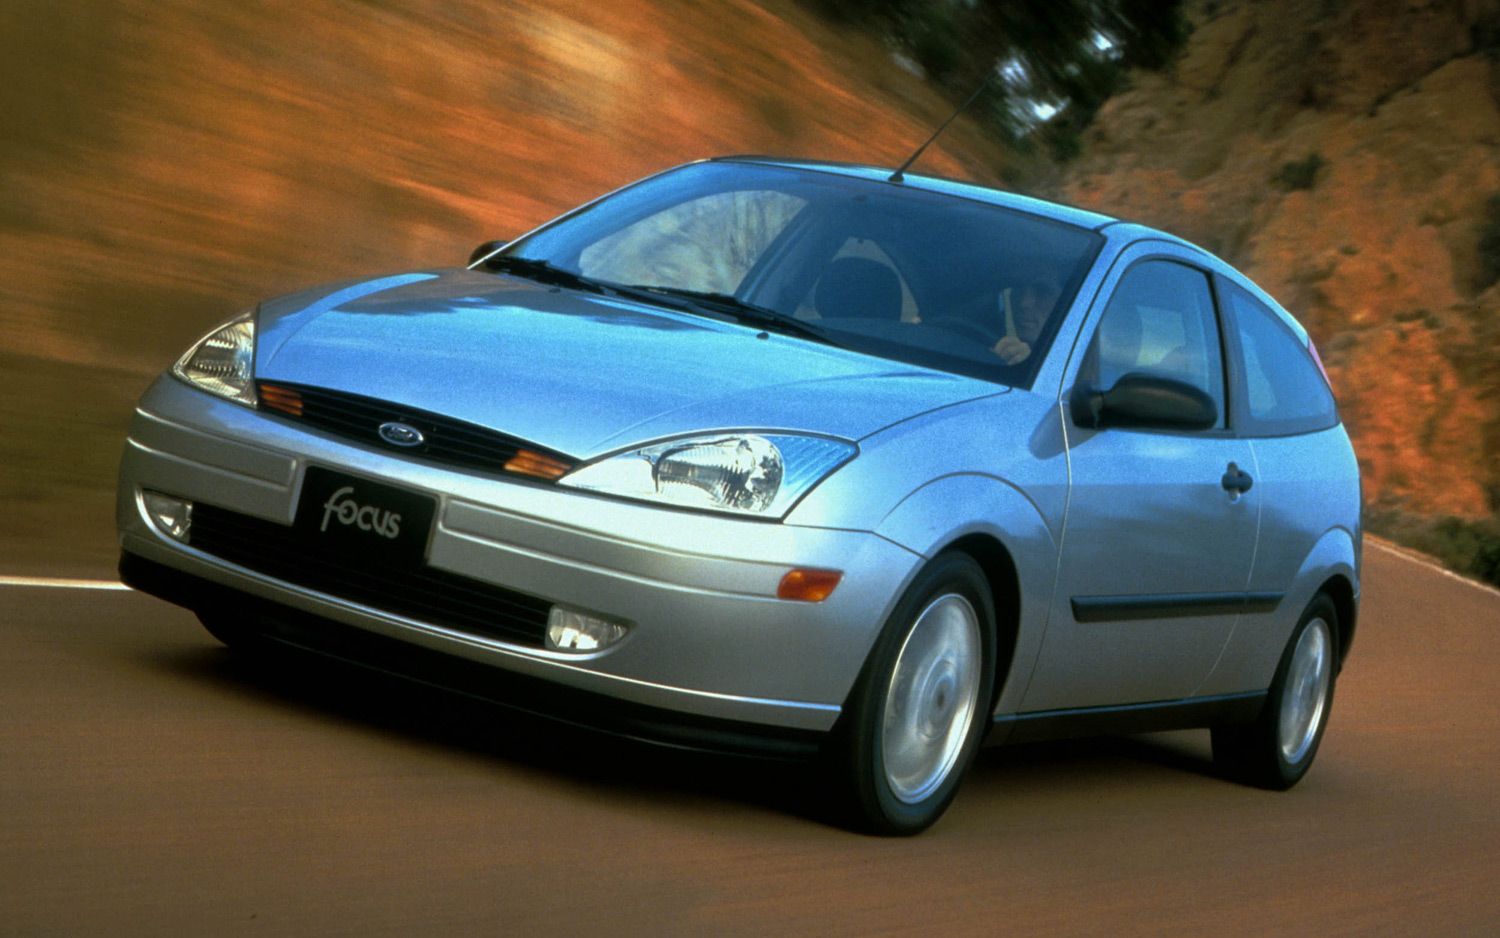 Ford fusion 2000 photo - 5